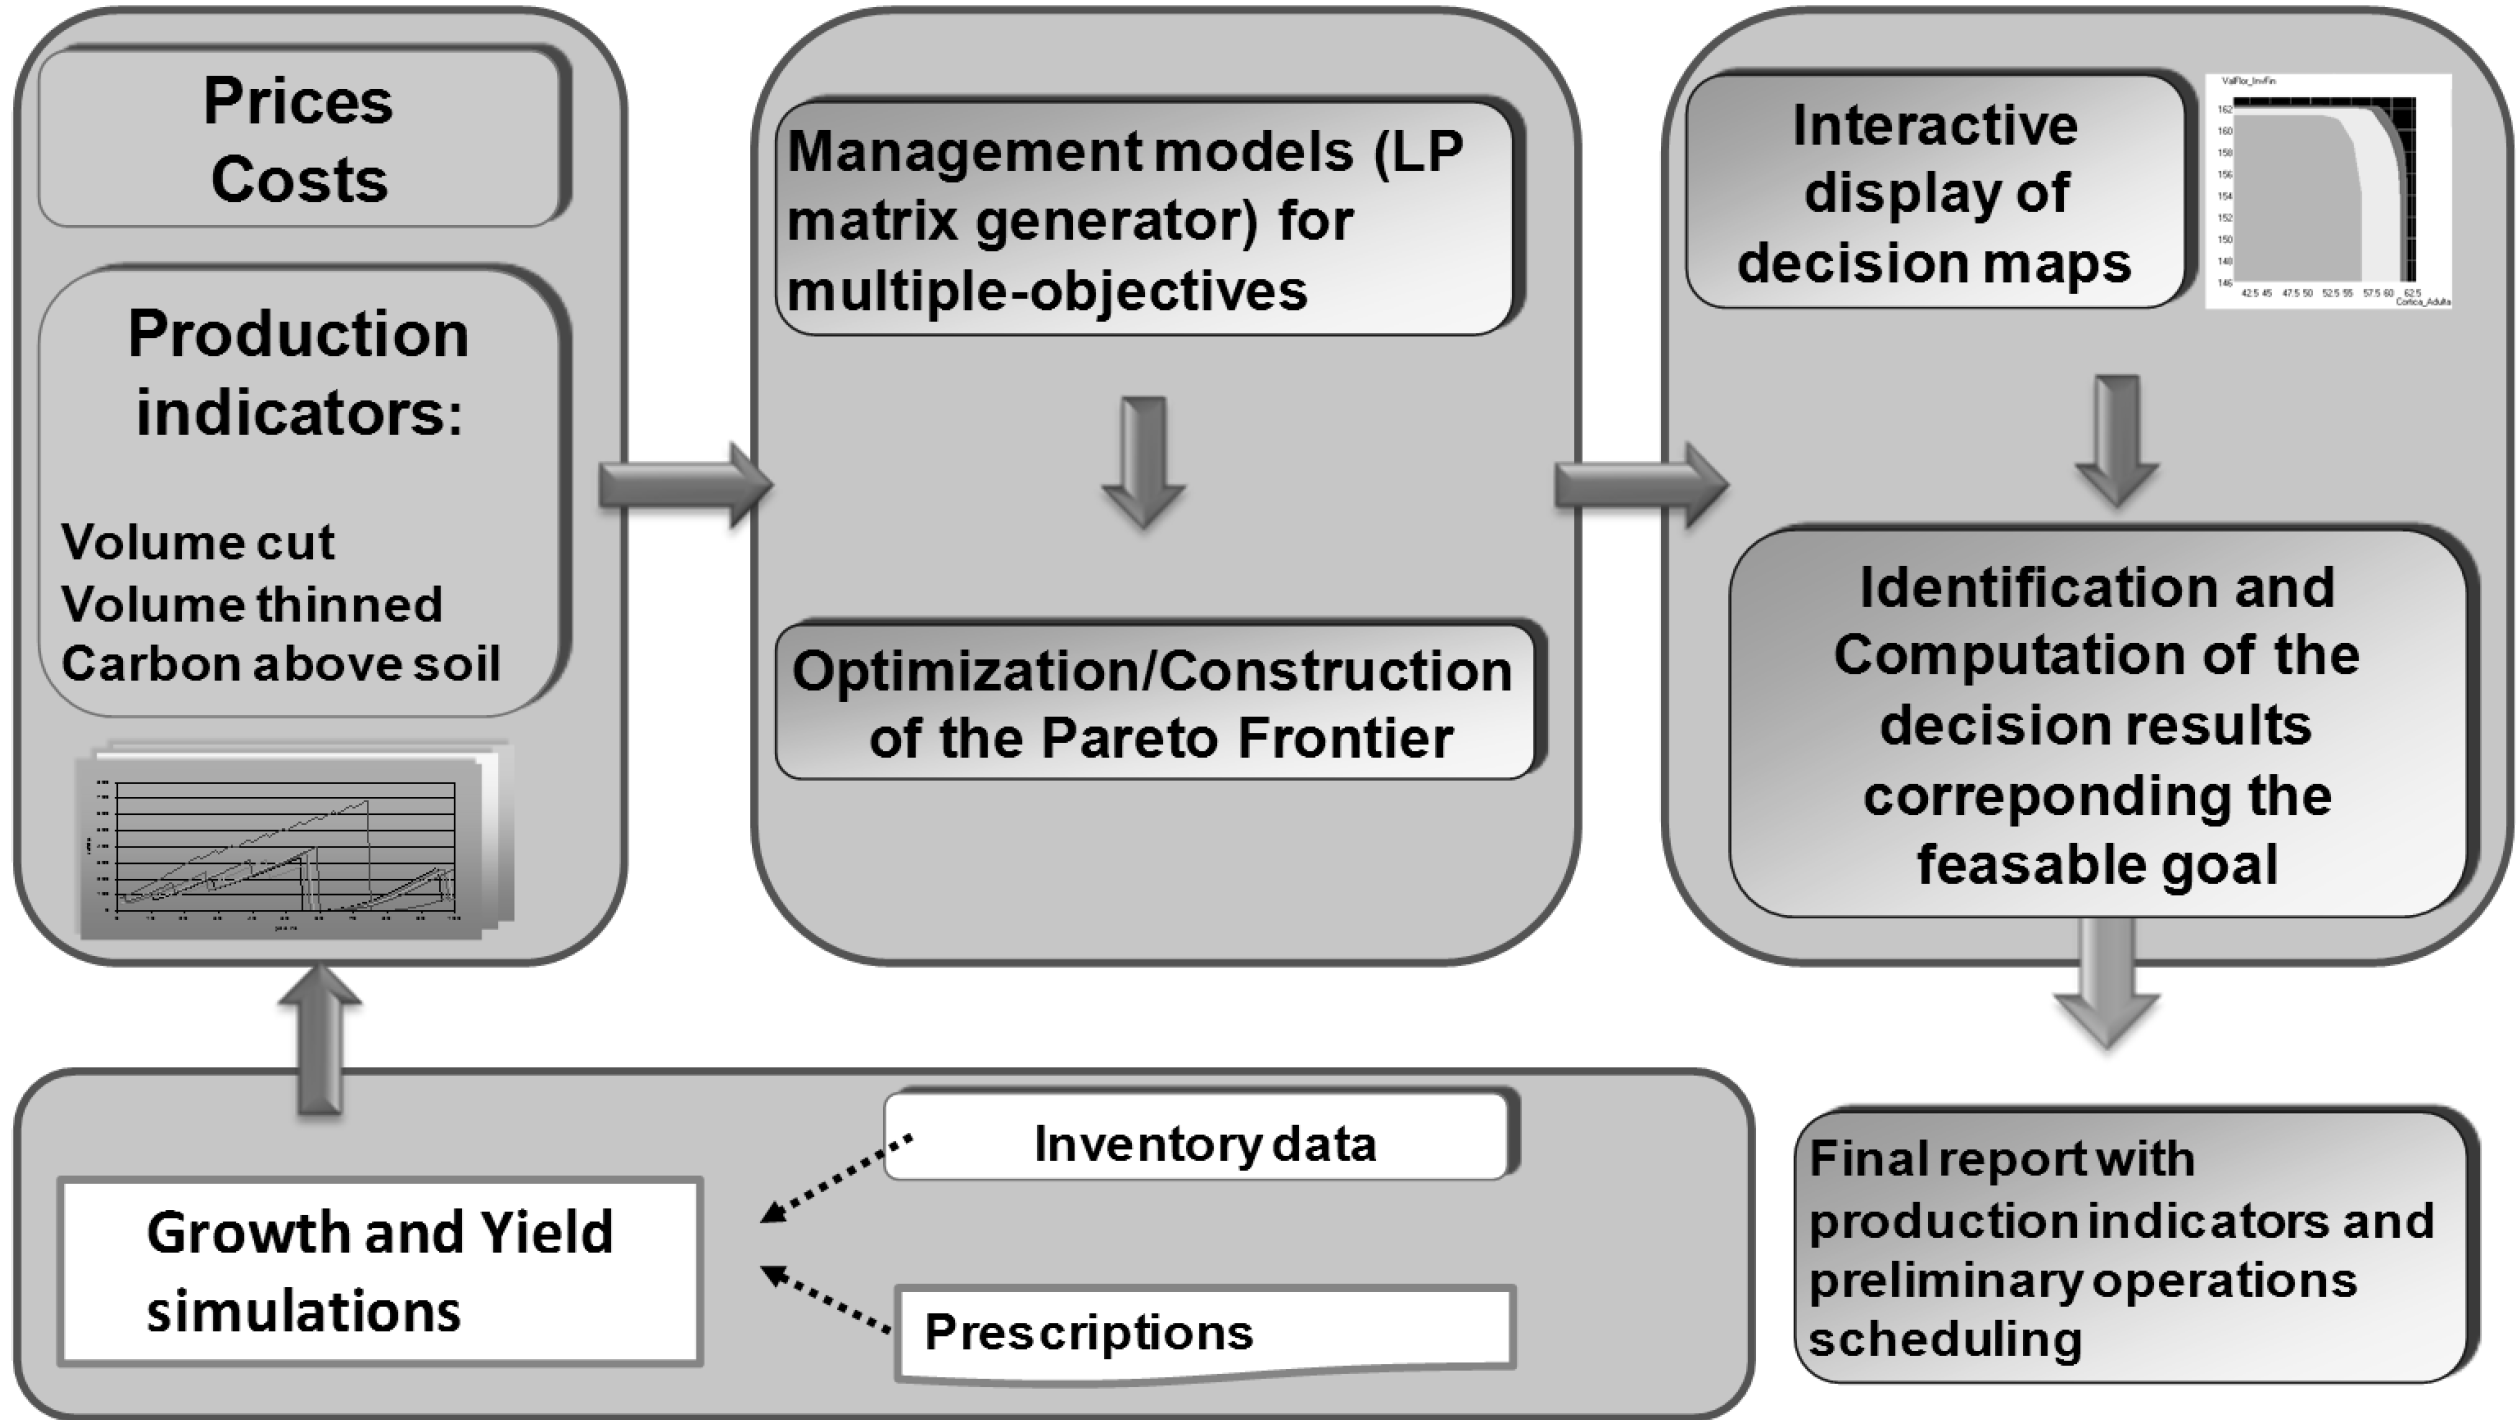 lp formulation simulation Selected topics in linear programming, including problem formulation checklist, sensitivity analysis, binary variables, simulation, useful functions, and linearity.